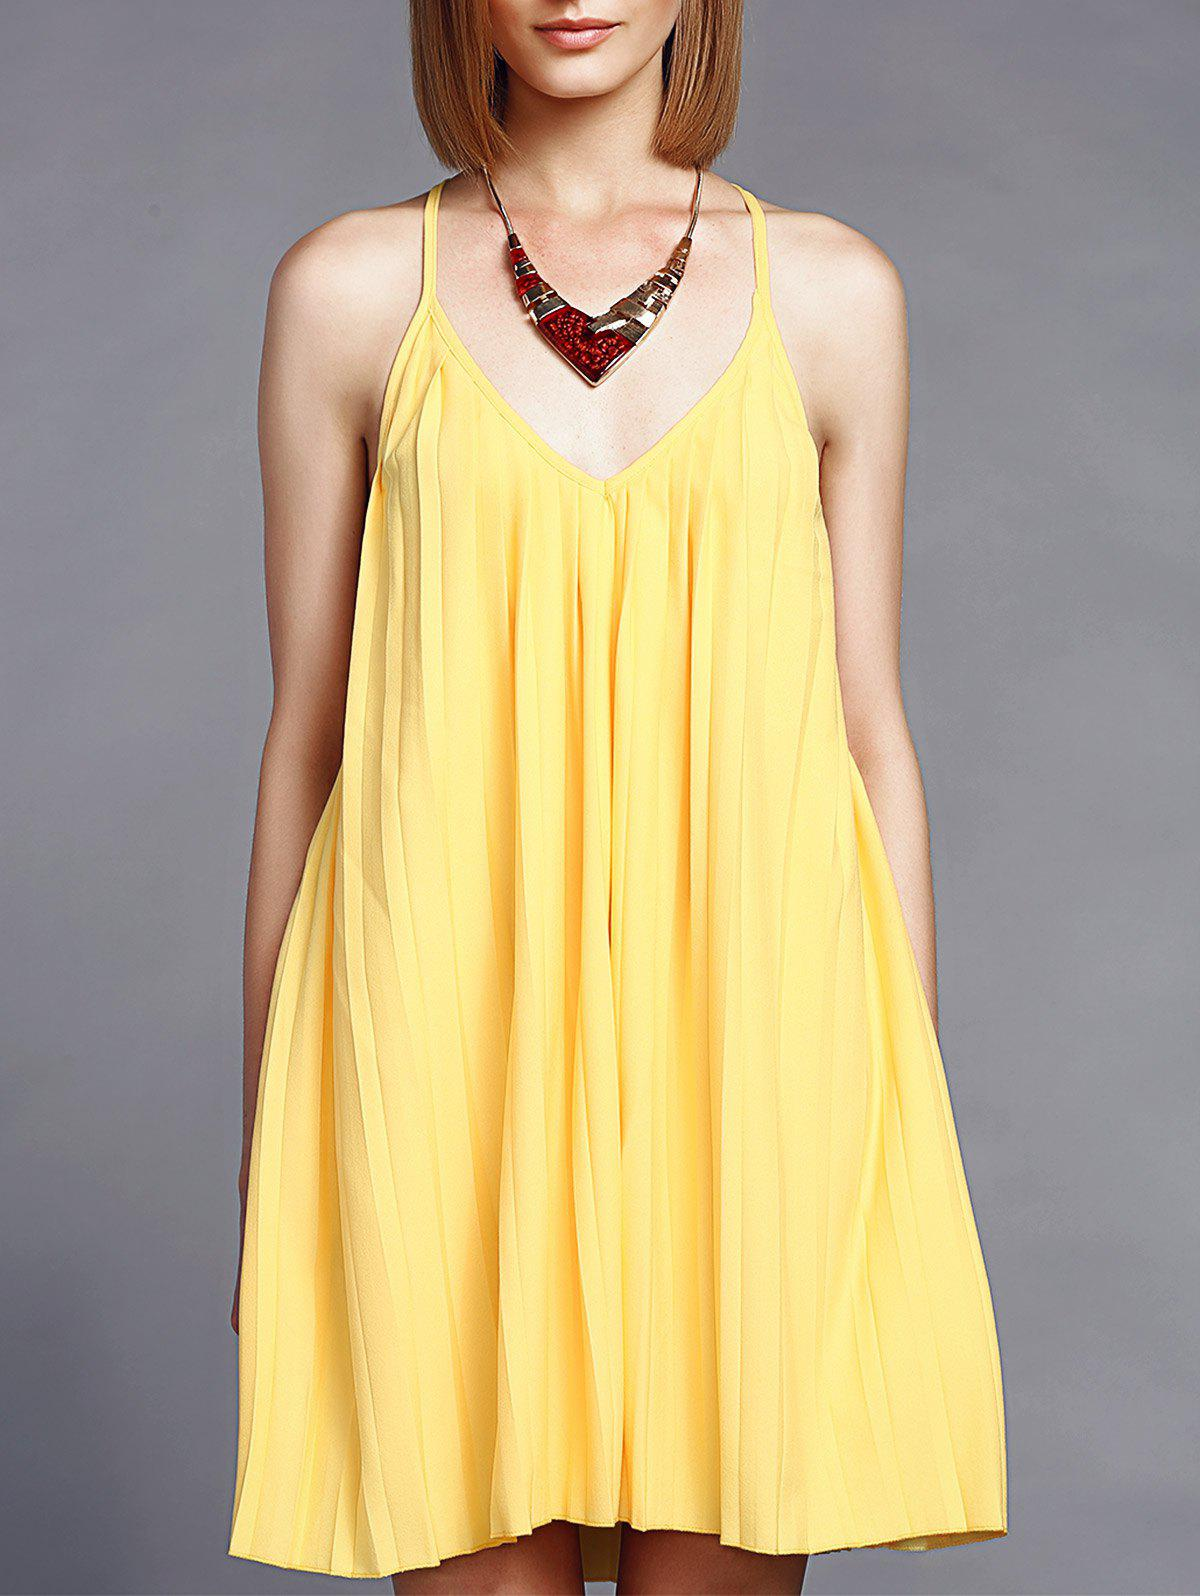 Charming Women's V-Neck Pleated Yellow Cami Mini Dress